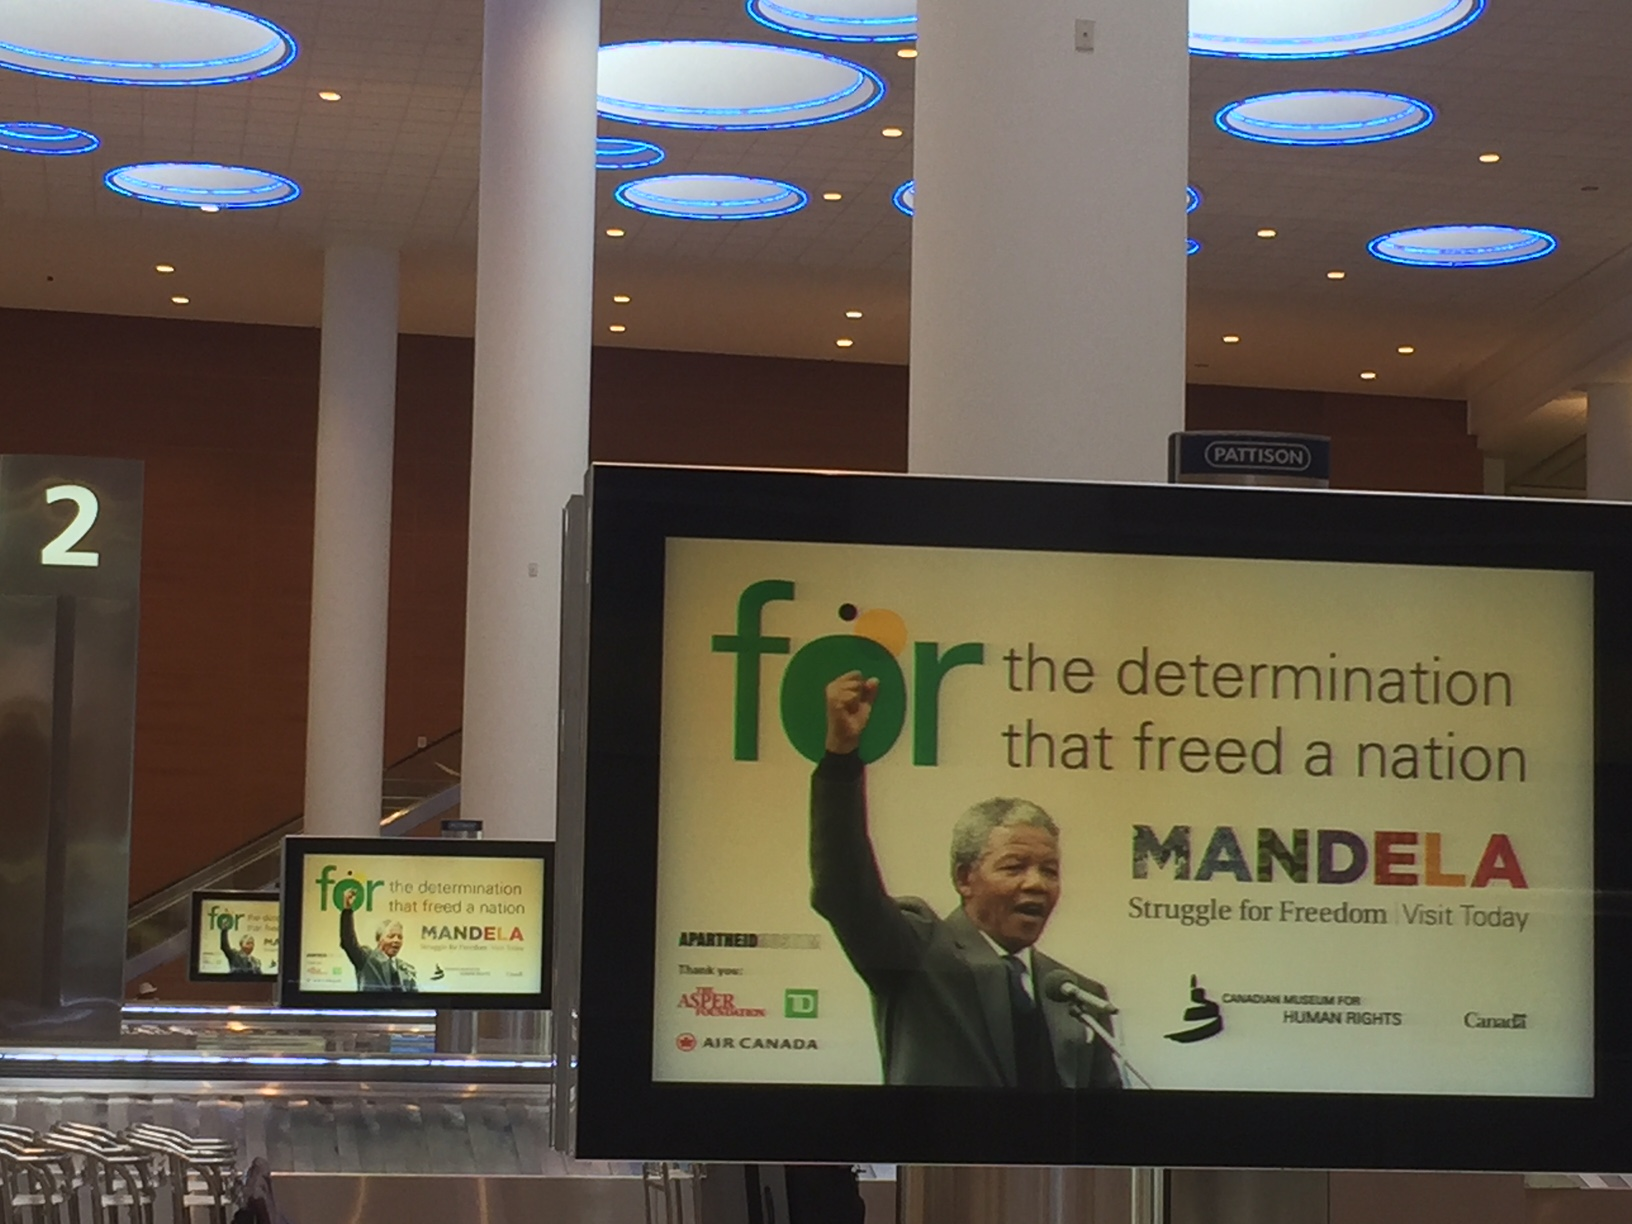 Baggage carousels featuring multiple screens with Mandela raising his fist.